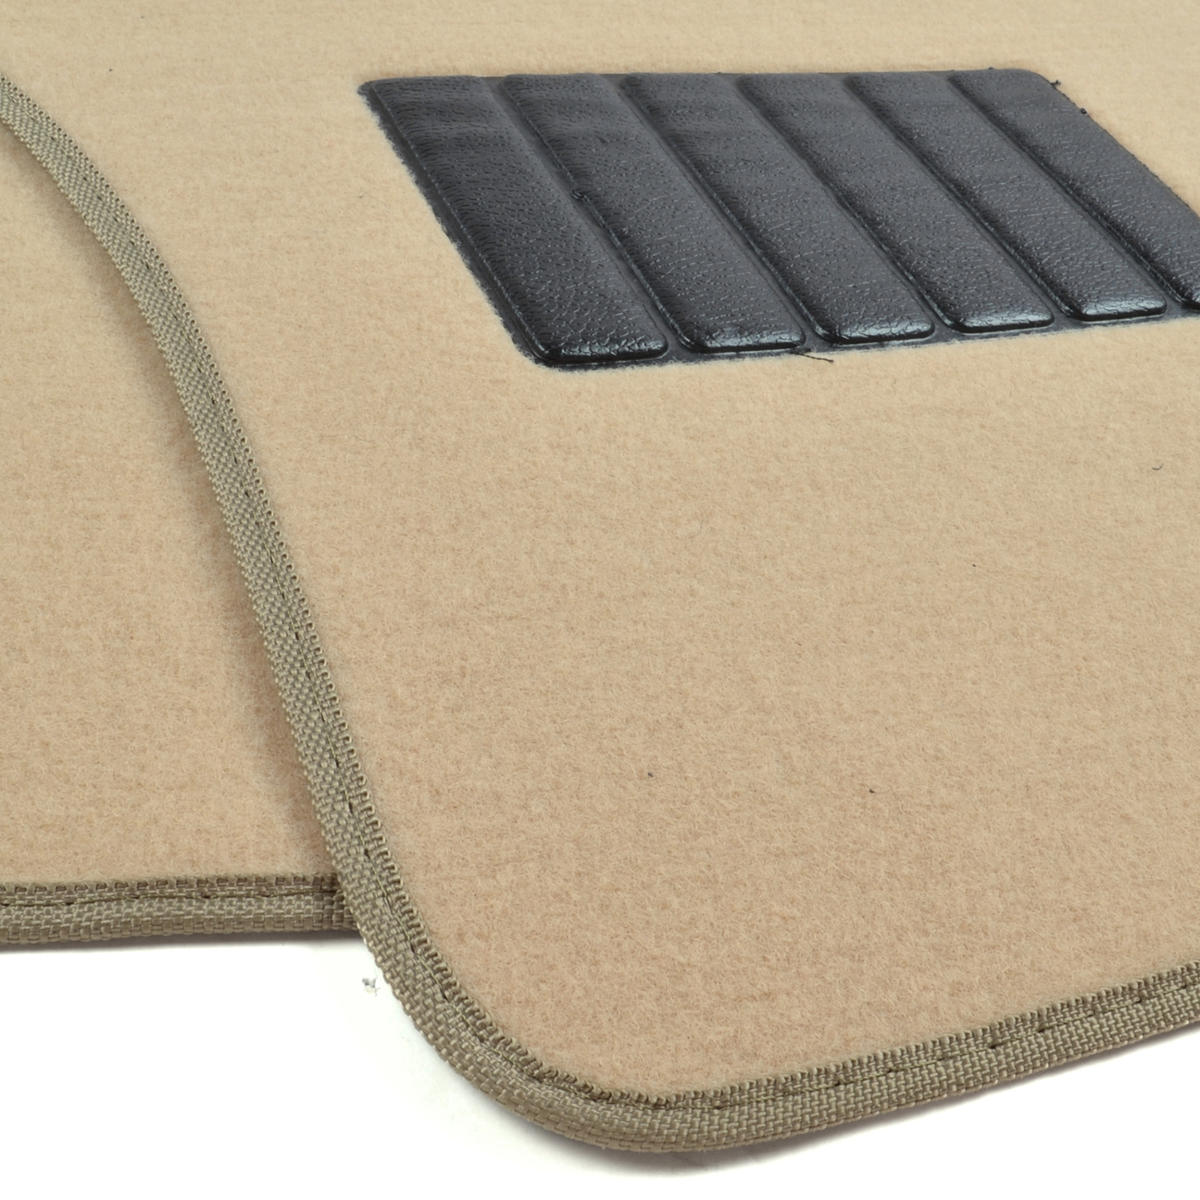 Auto Floor Mats For Car Classic Carpet W Heelpad Tan